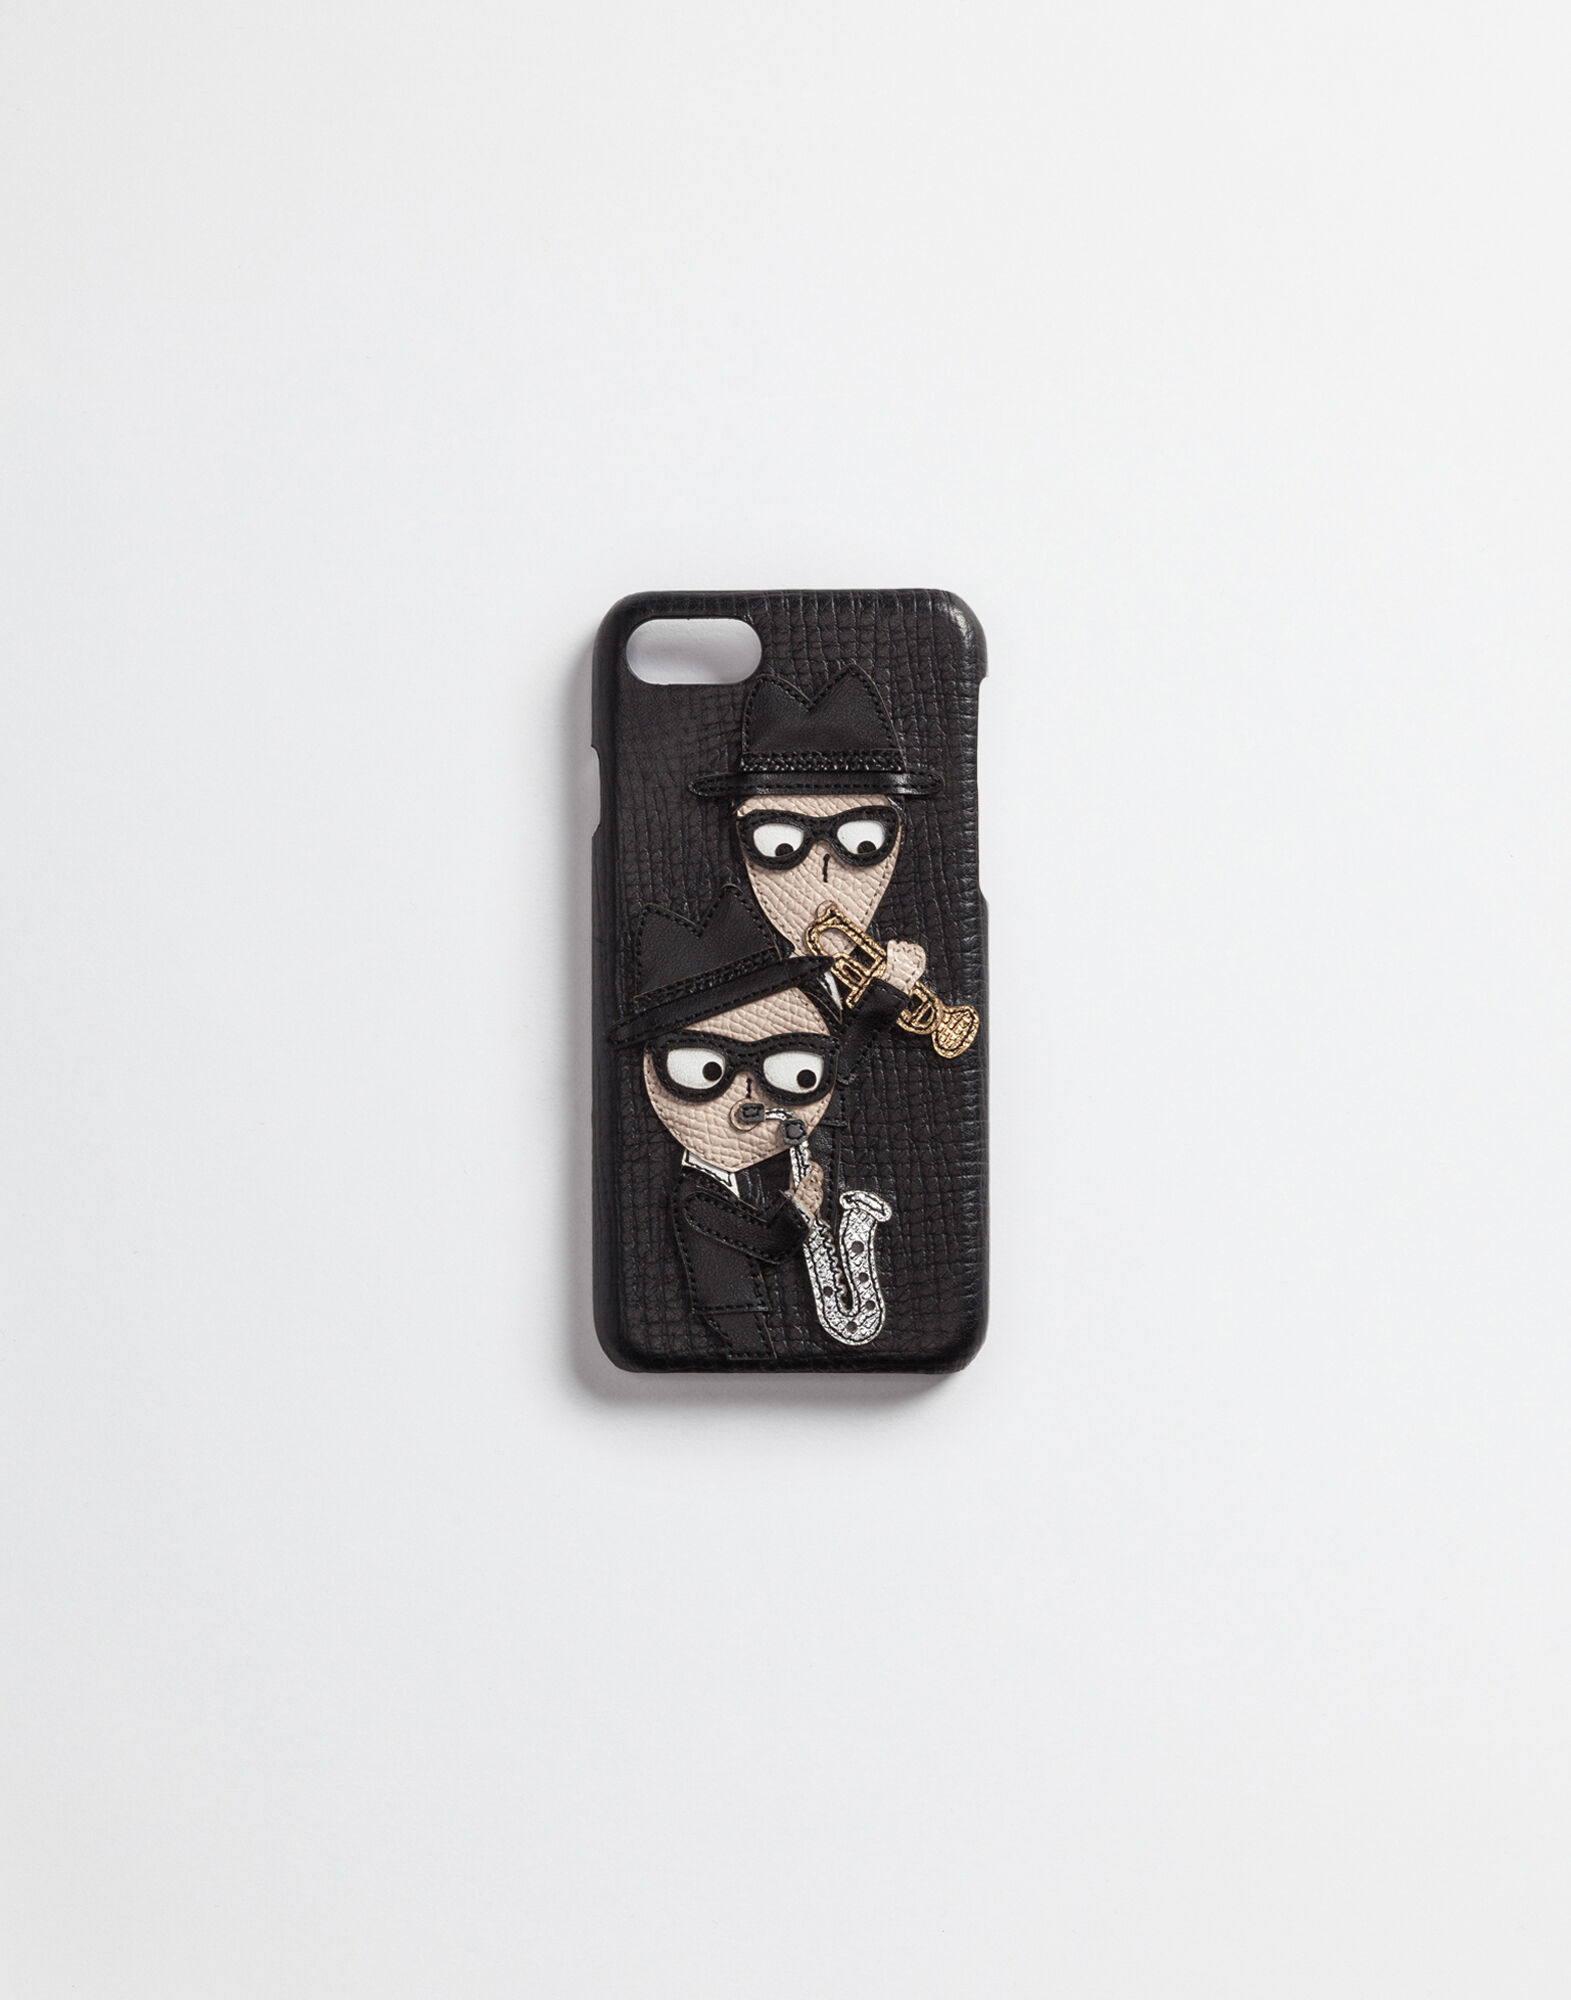 COVER FOR IPHONE 7 IN LEATHER WITH DESIGNERS PATCH